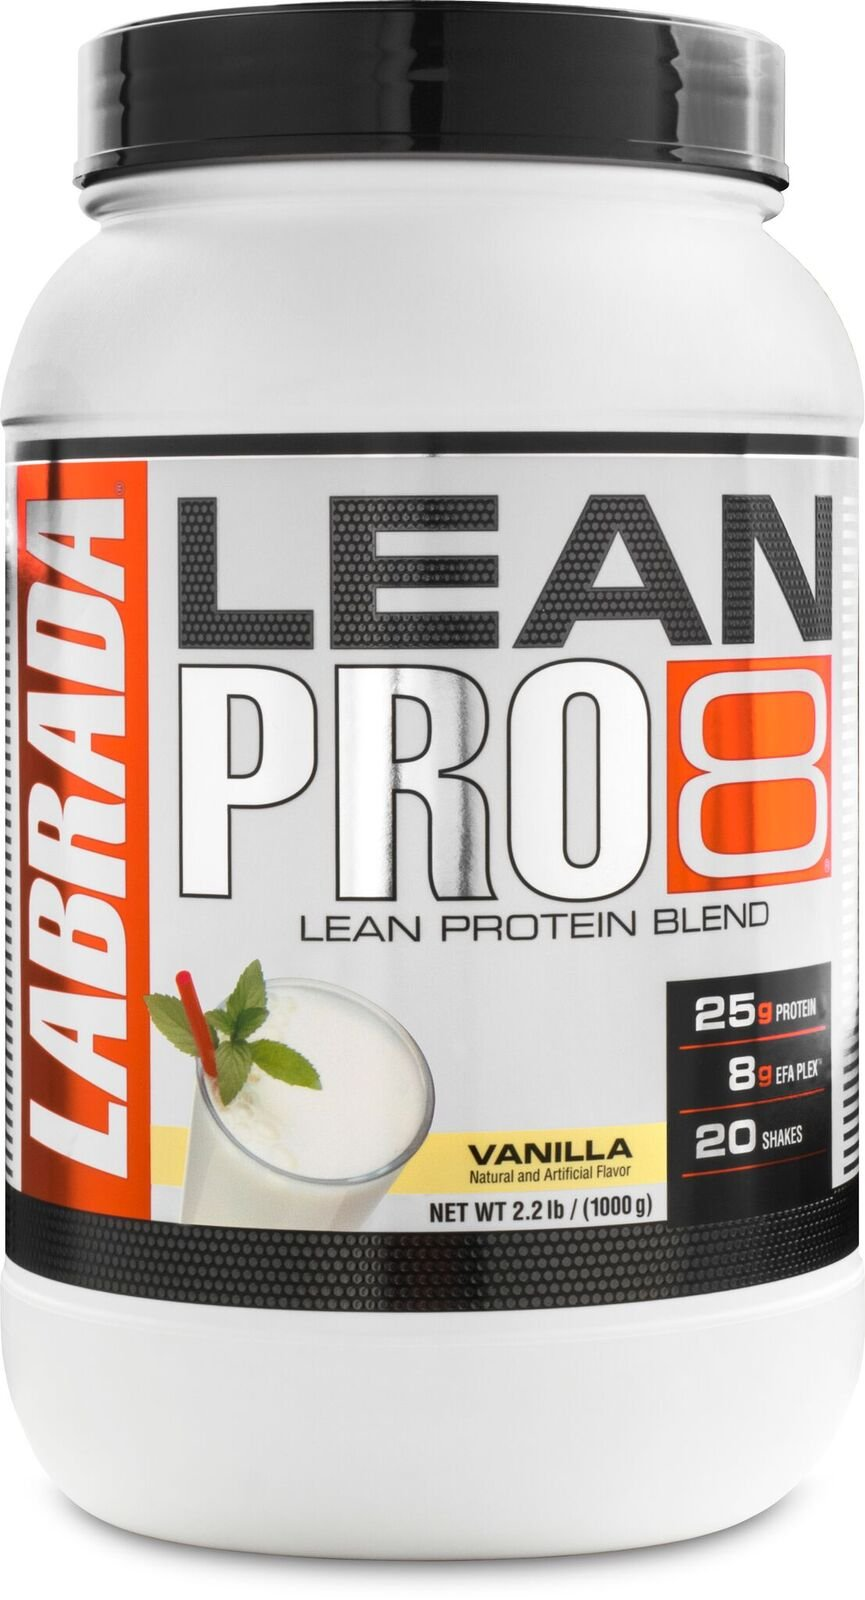 Labrada Nutrition Lean Pro 8, Super Premium Protein Powder with Whey Isolate & Casein for All-Day Lean Muscle Support, Vanilla, 2.2 Pound